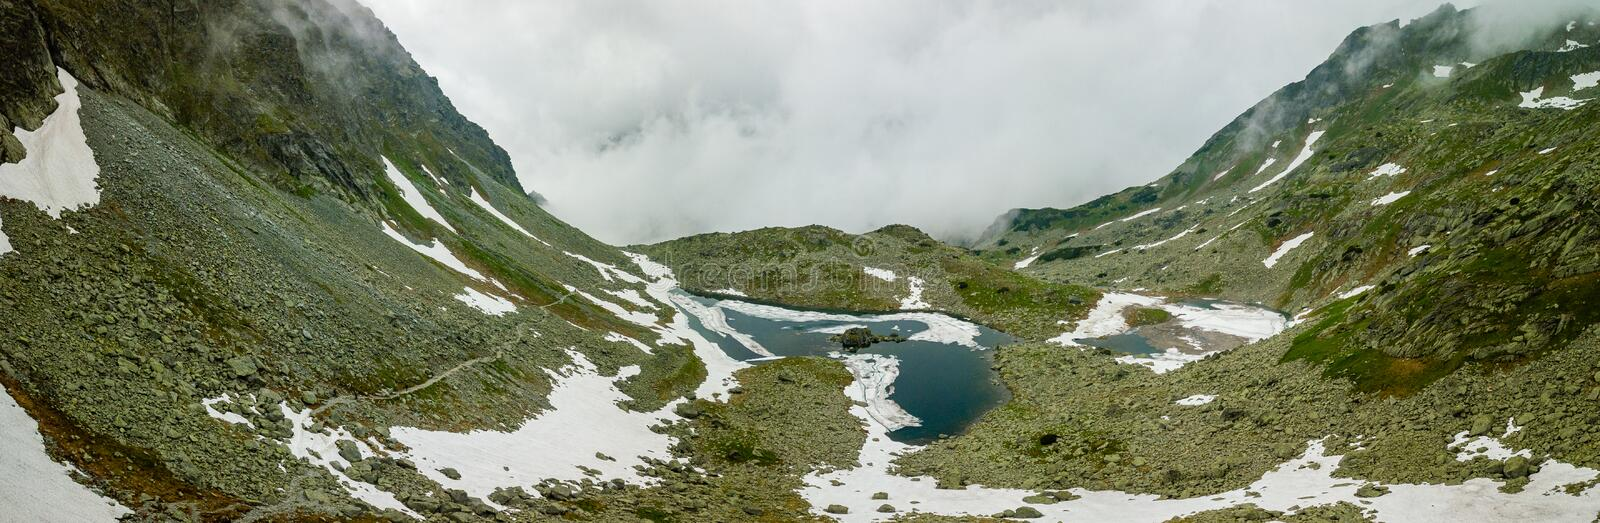 Panoramic view of mountain lake and snow surrounding it.  stock images